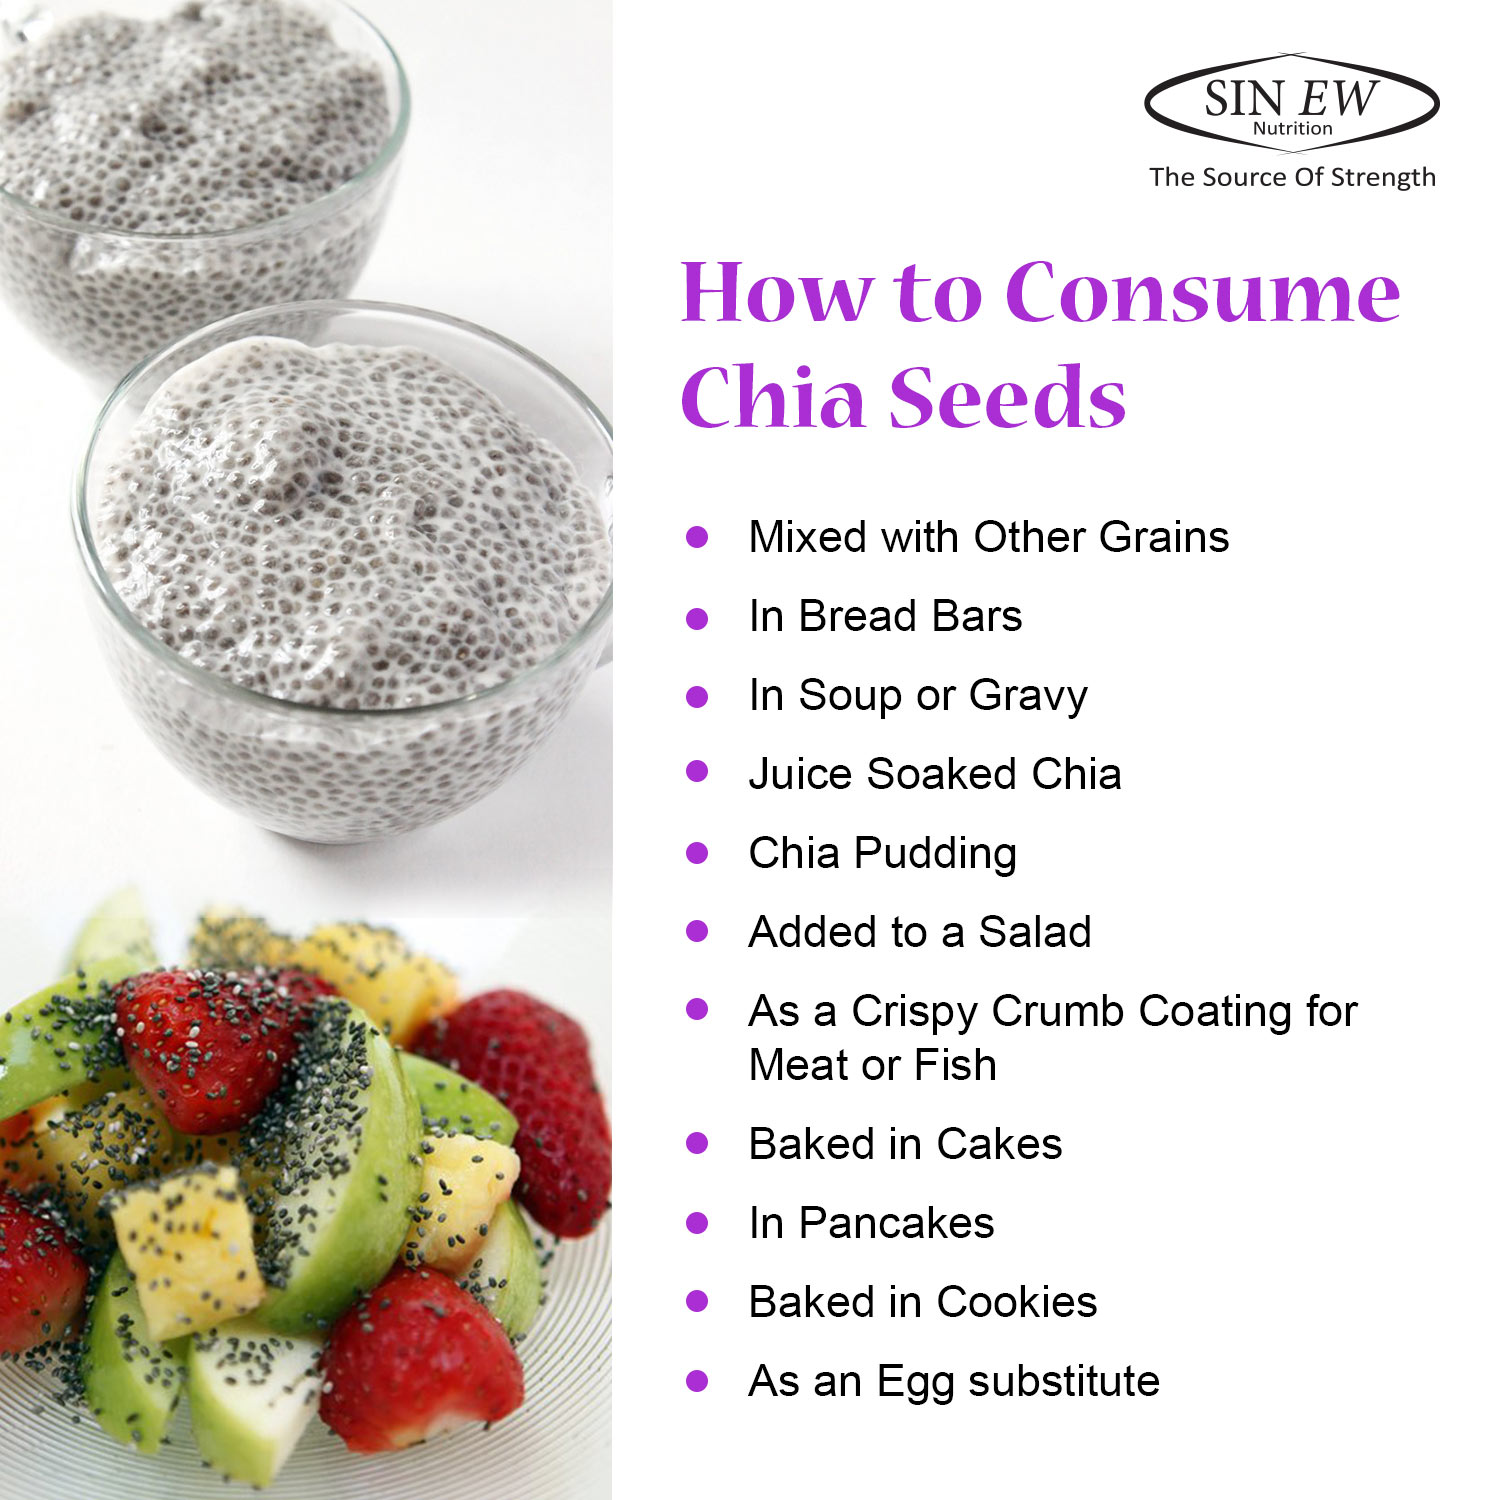 How To Consume Chia Seeds